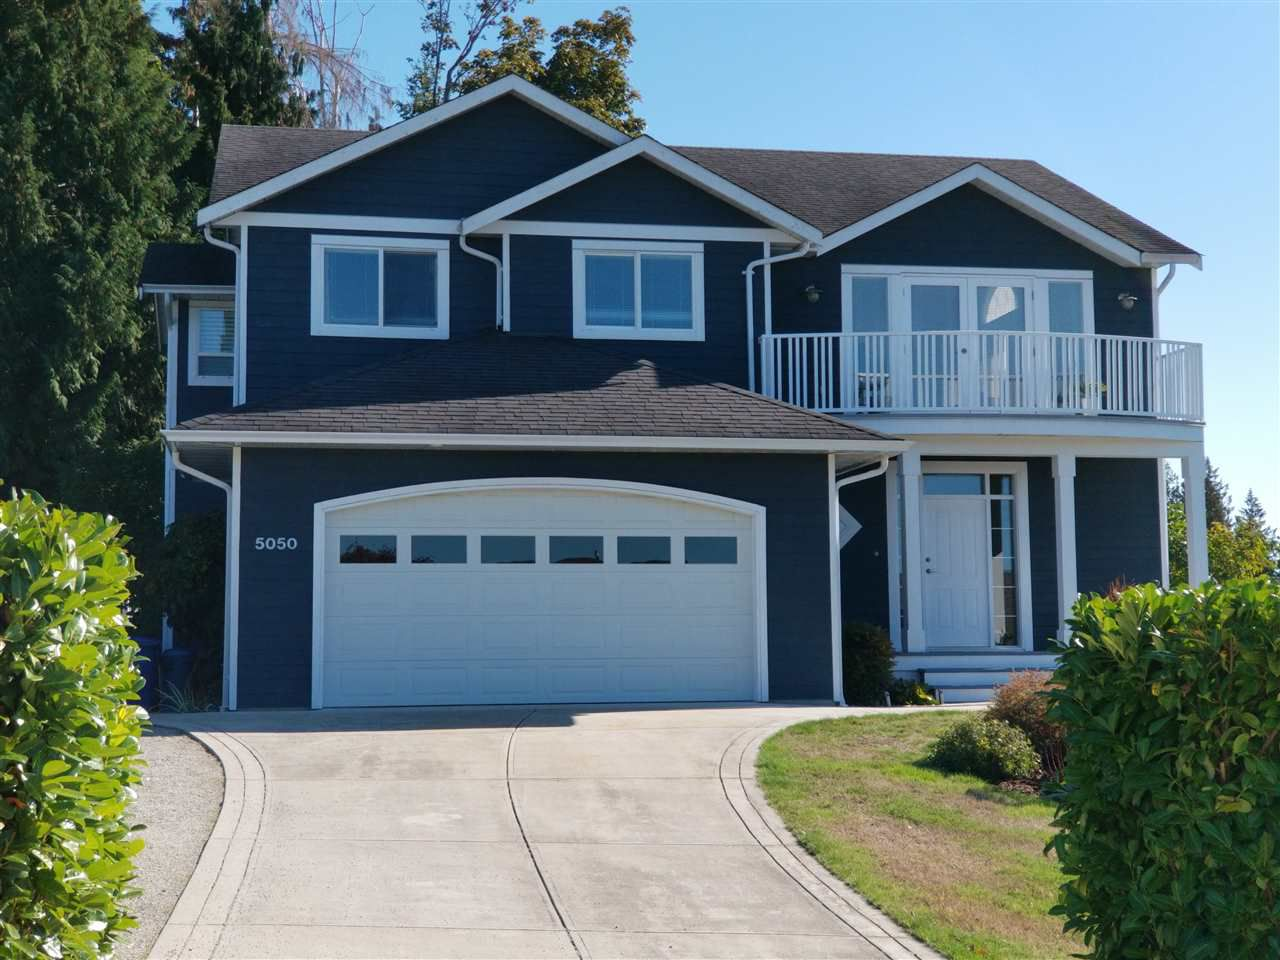 Main Photo: 5050 BAY Road in Sechelt: Sechelt District House for sale (Sunshine Coast)  : MLS®# R2211781